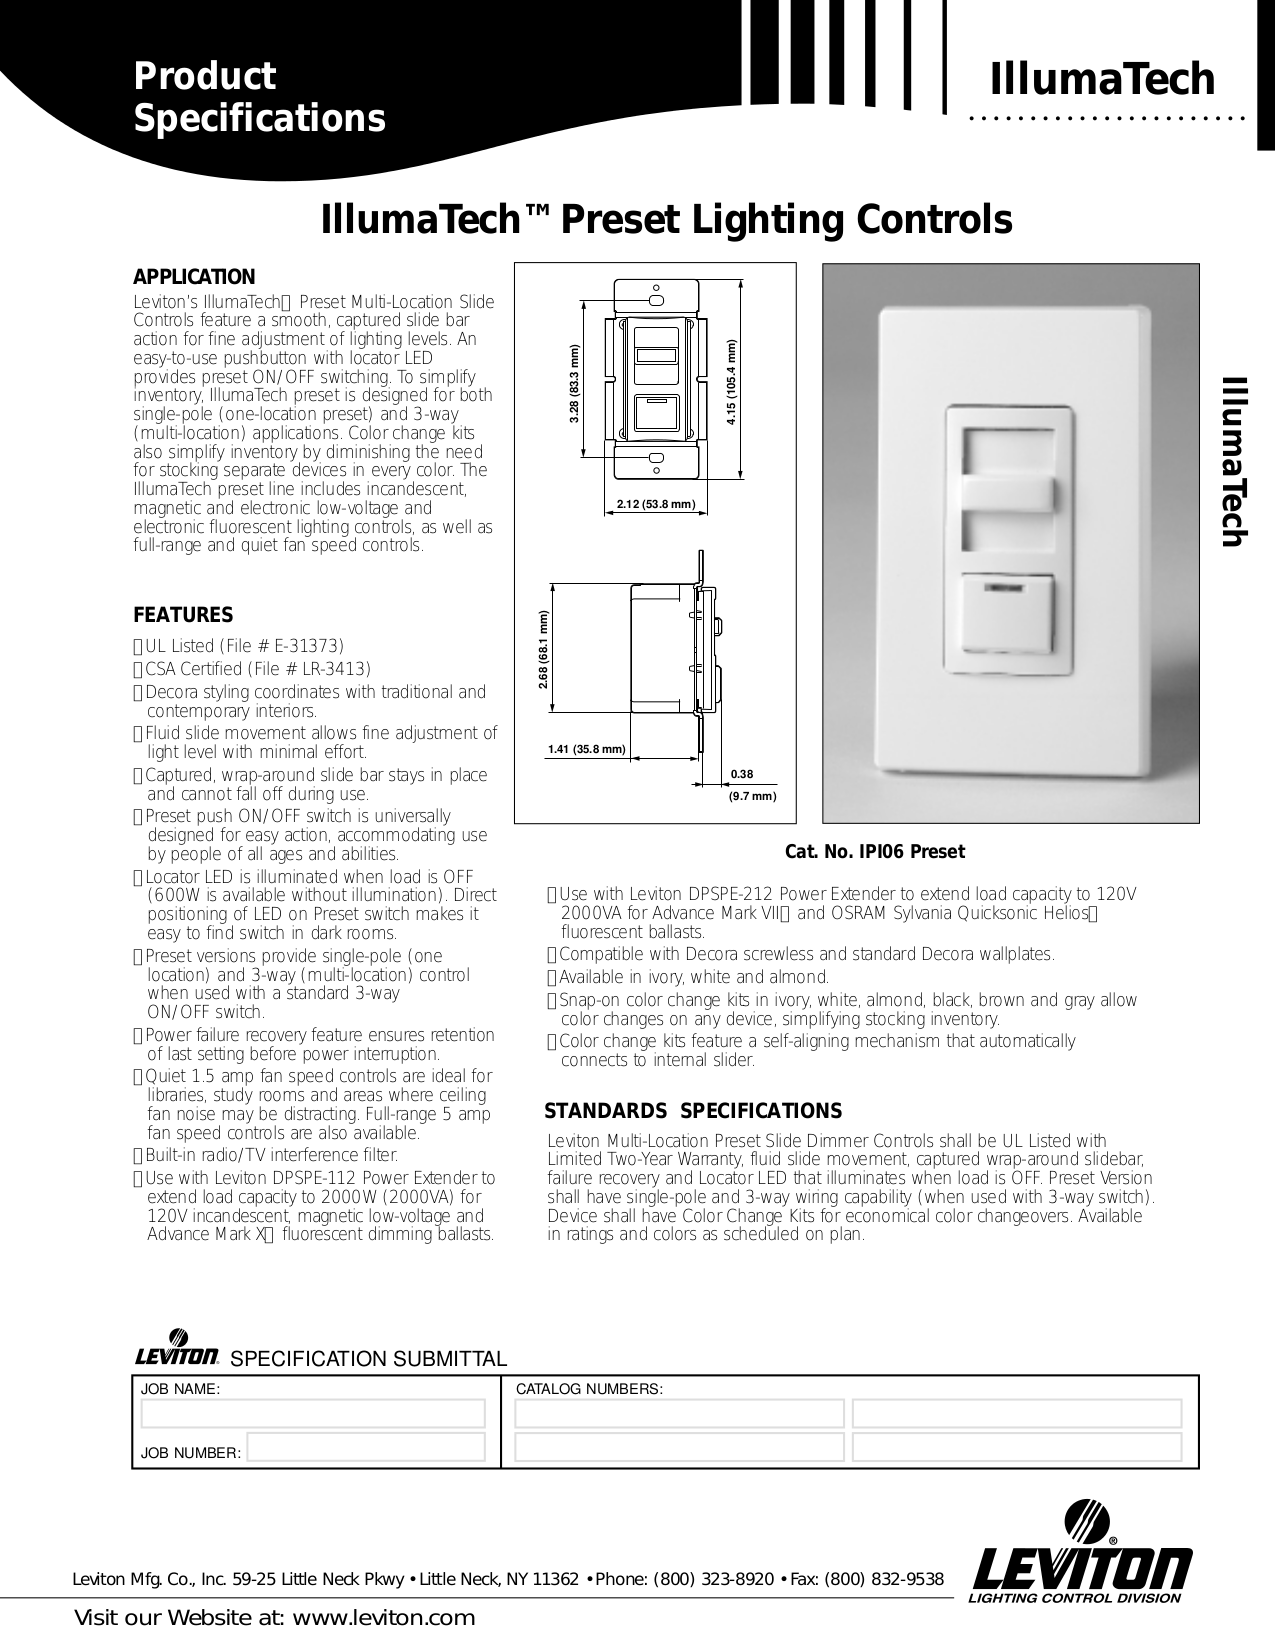 Download Free Pdf For Leviton Illumatech Ipx10 1 Dimmers Other Manual 3 Way Switch Failure